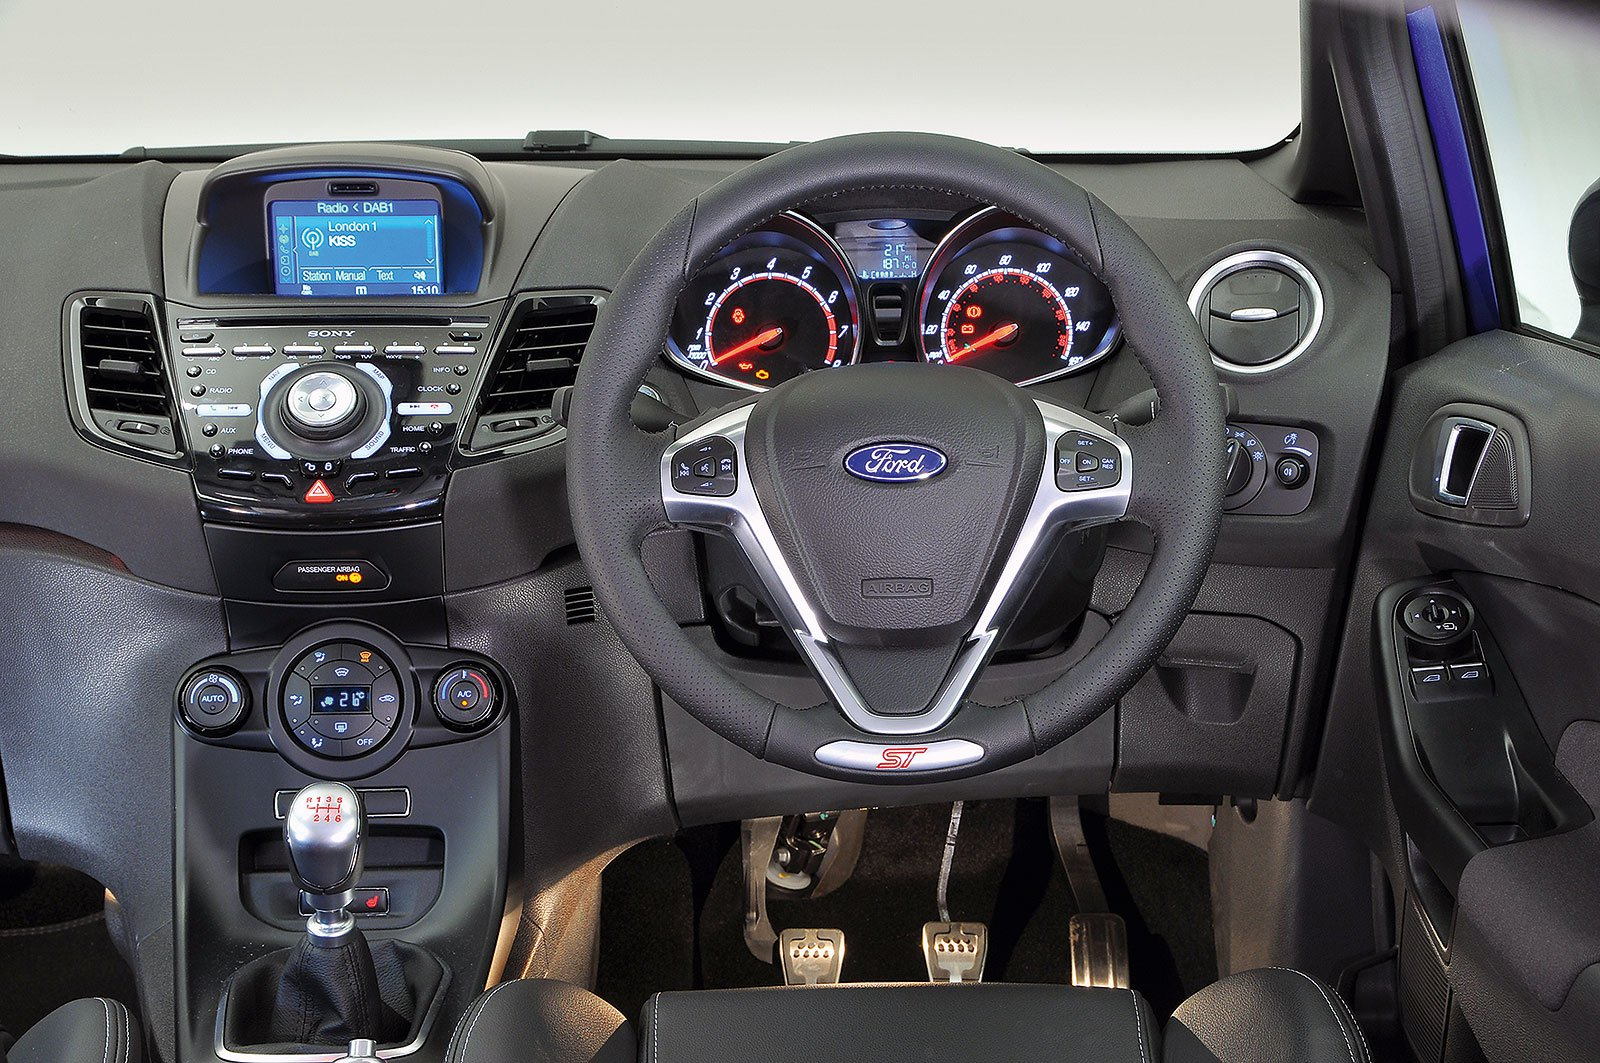 Ford Fiesta ST (2013-2017) - interior